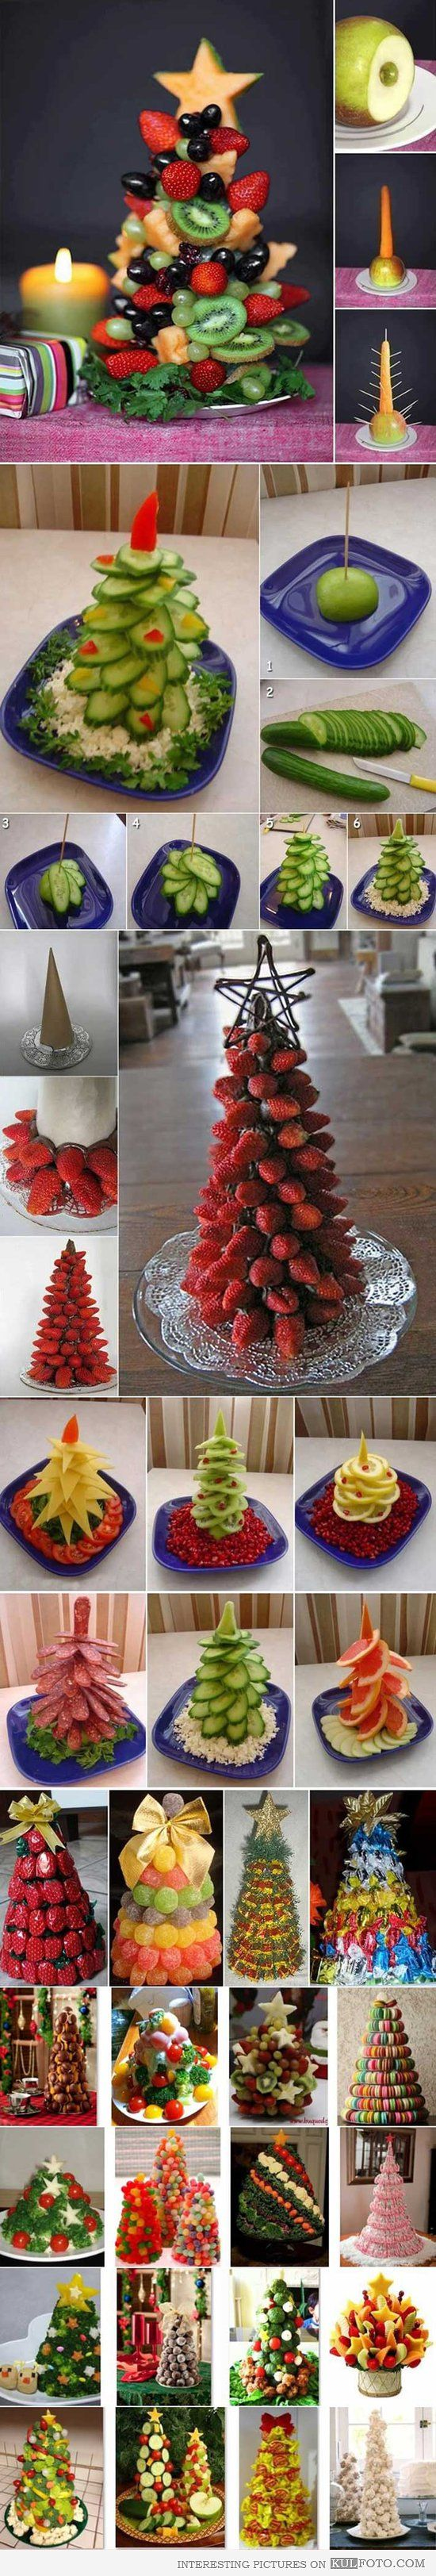 Food Christmas trees - Funny how-to guide with pictures for creating beautiful and cute Christmas trees from fruit and vegetables. *